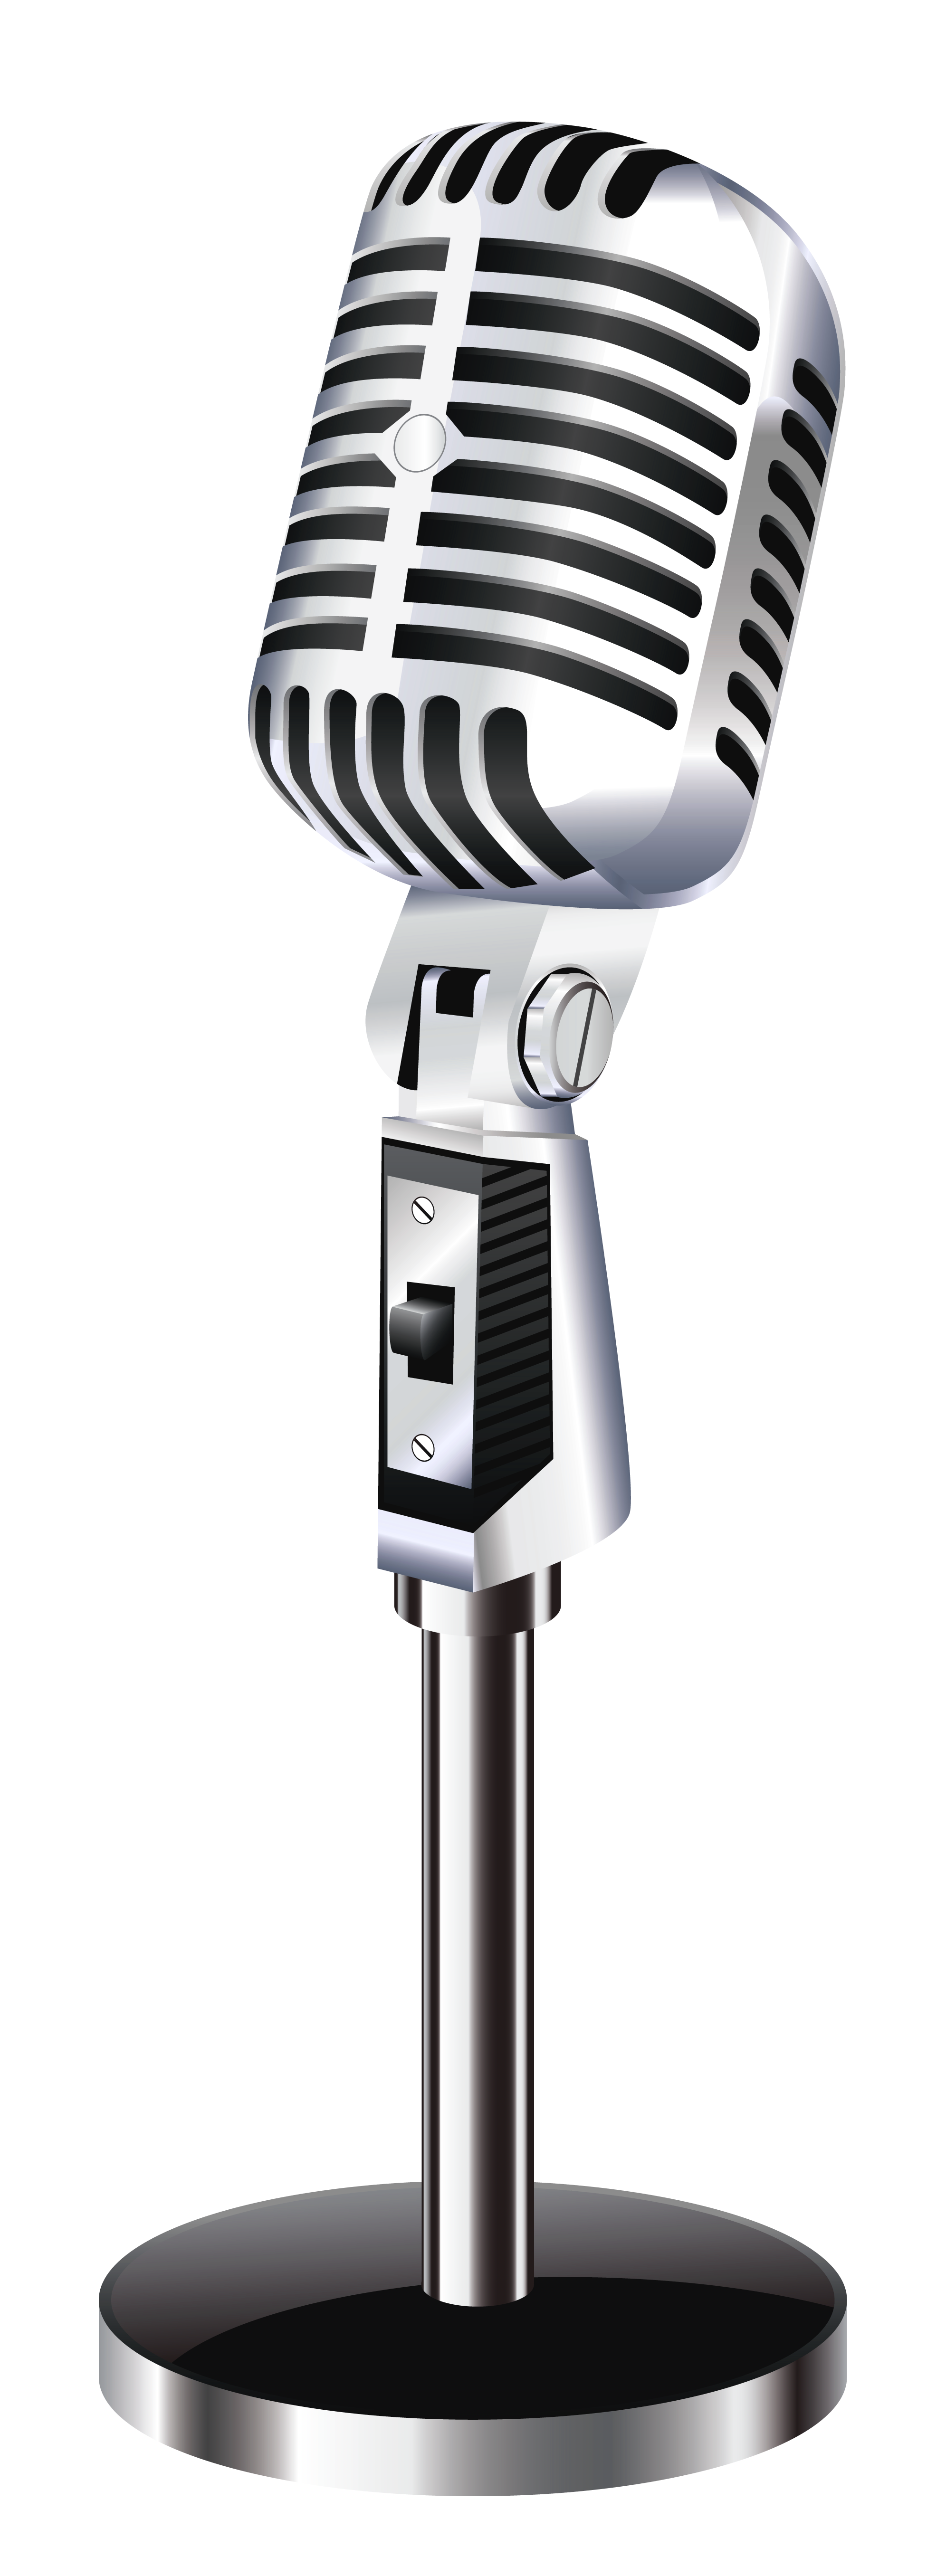 Mike likewise clipartpanda additionally Retro Microphone 5821 Vector Clipart in addition Retro Microphone Icon Psd further Hand Drawn Vector Winged Retro Microphone Gg59413144. on old fashioned radio microphone icons